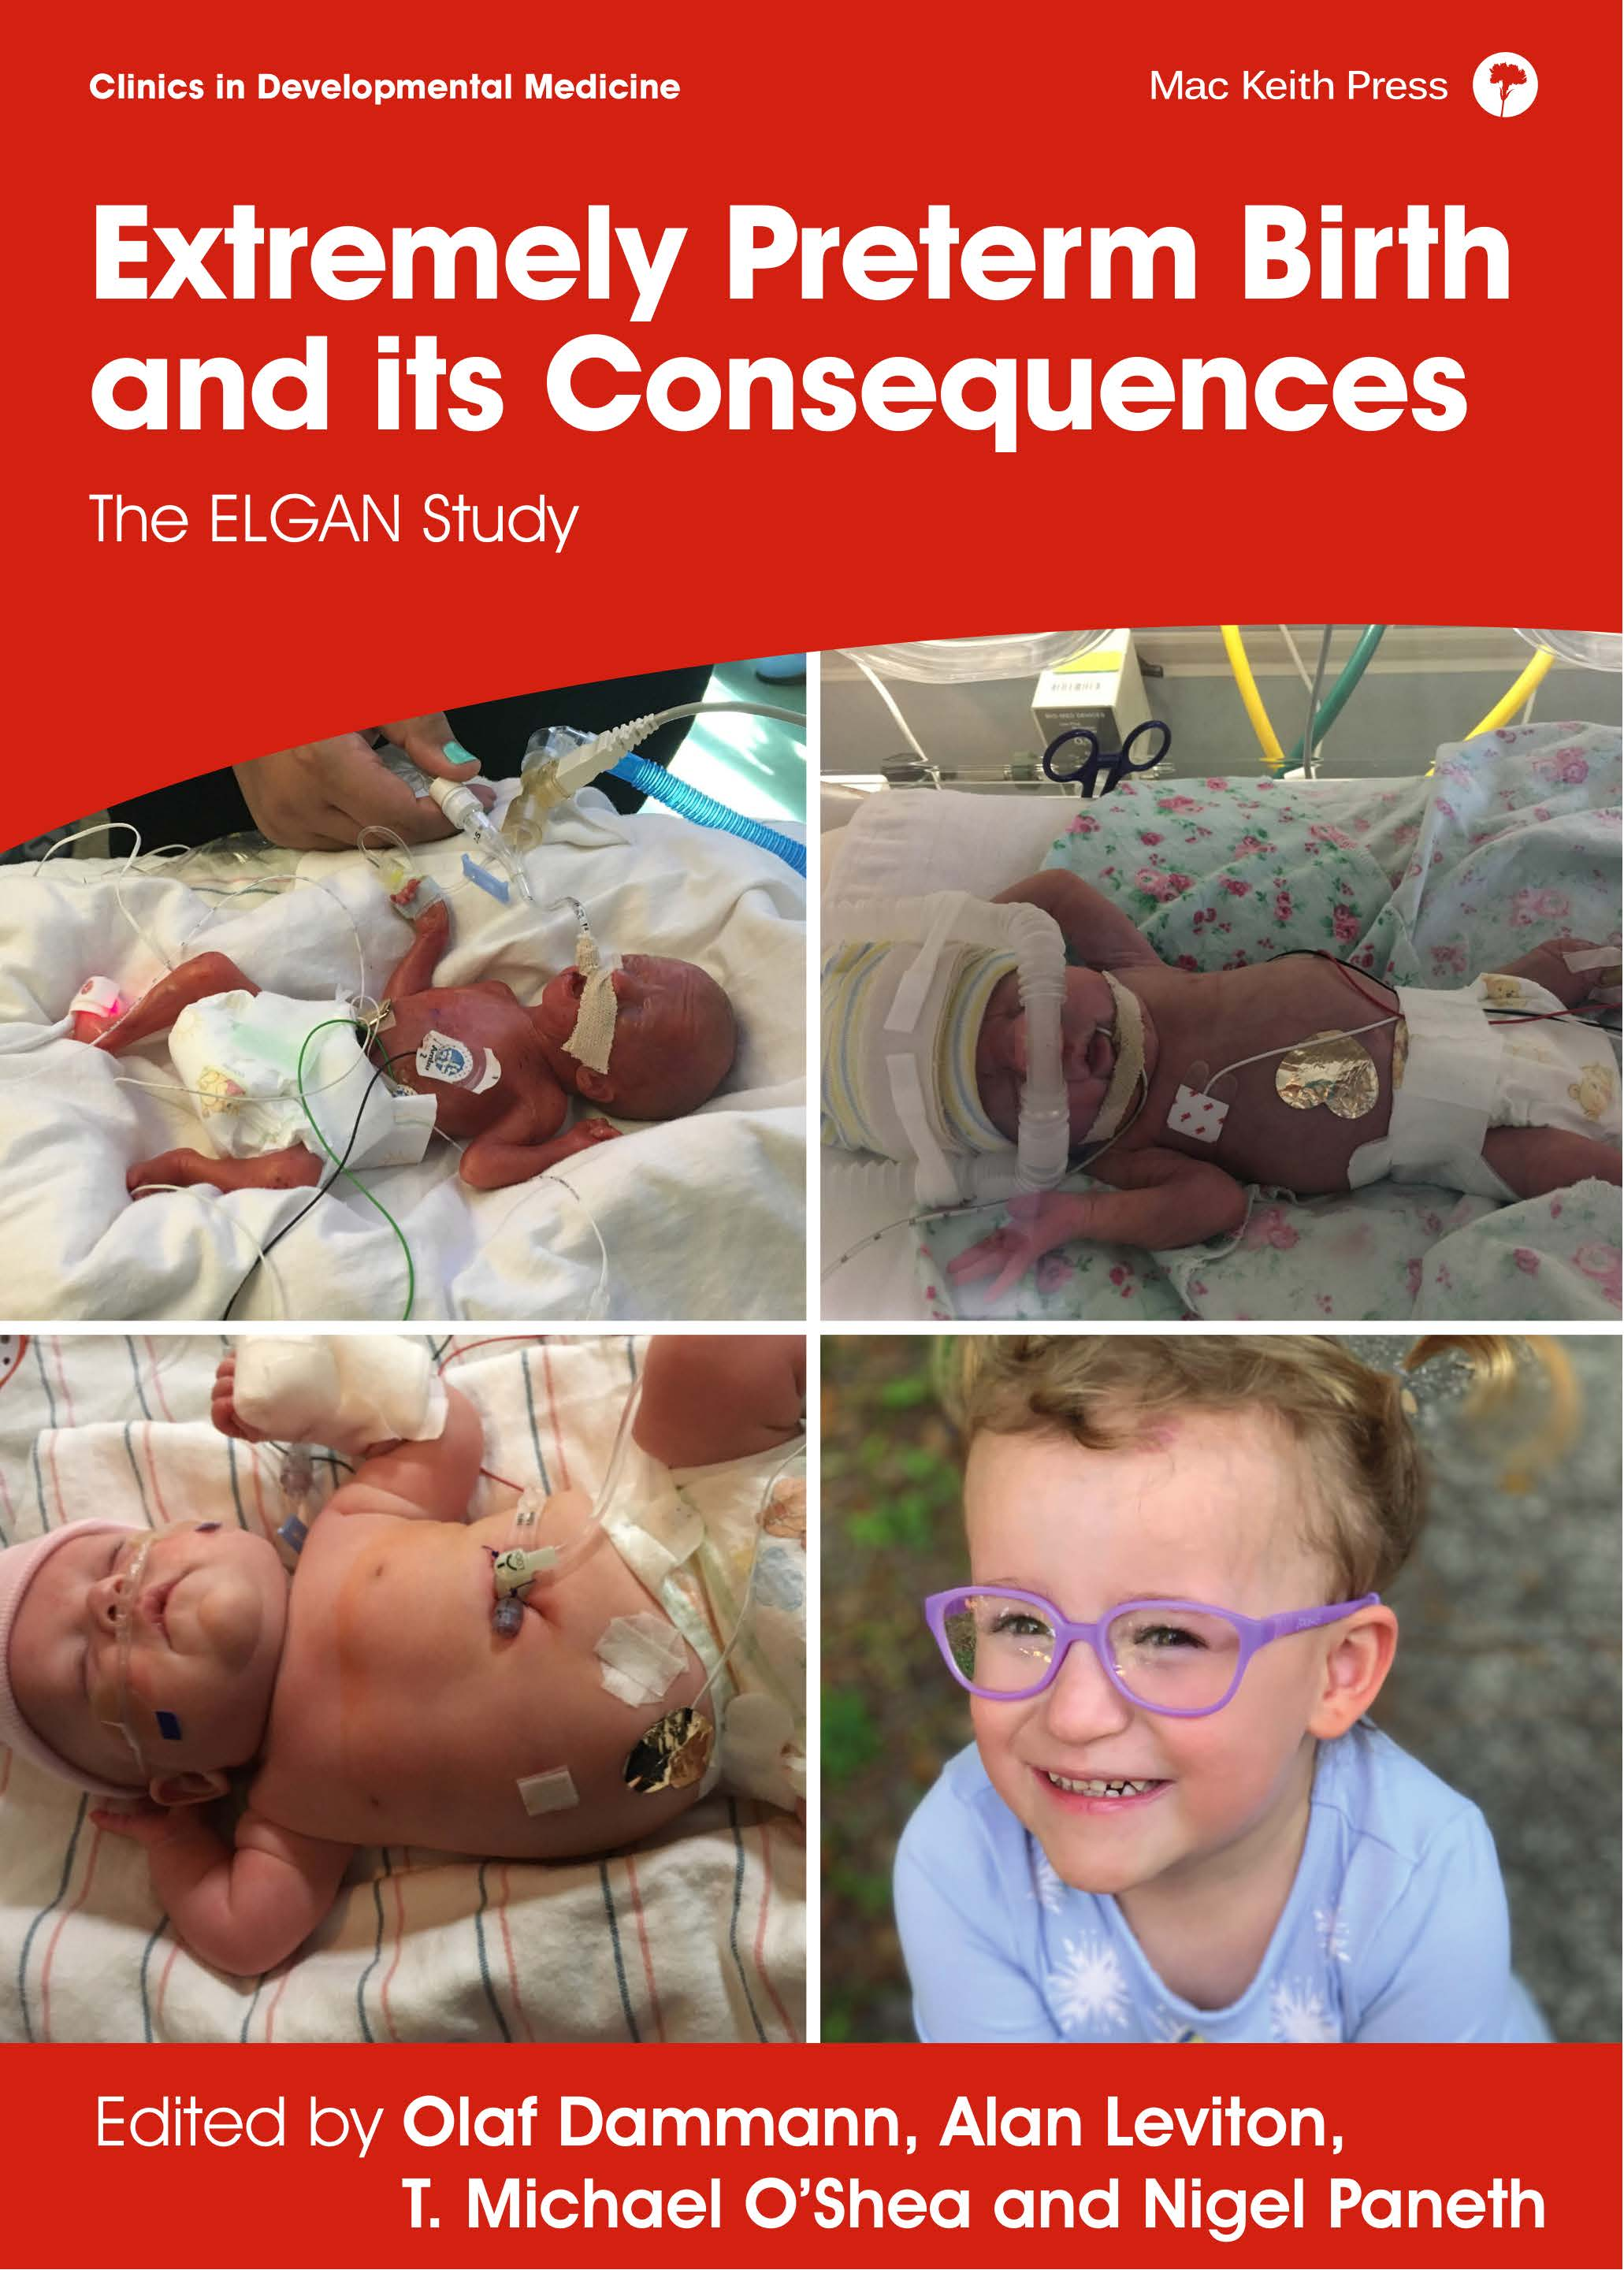 Damman, Extremely Preterm Birth and its Consequences, ELGAN